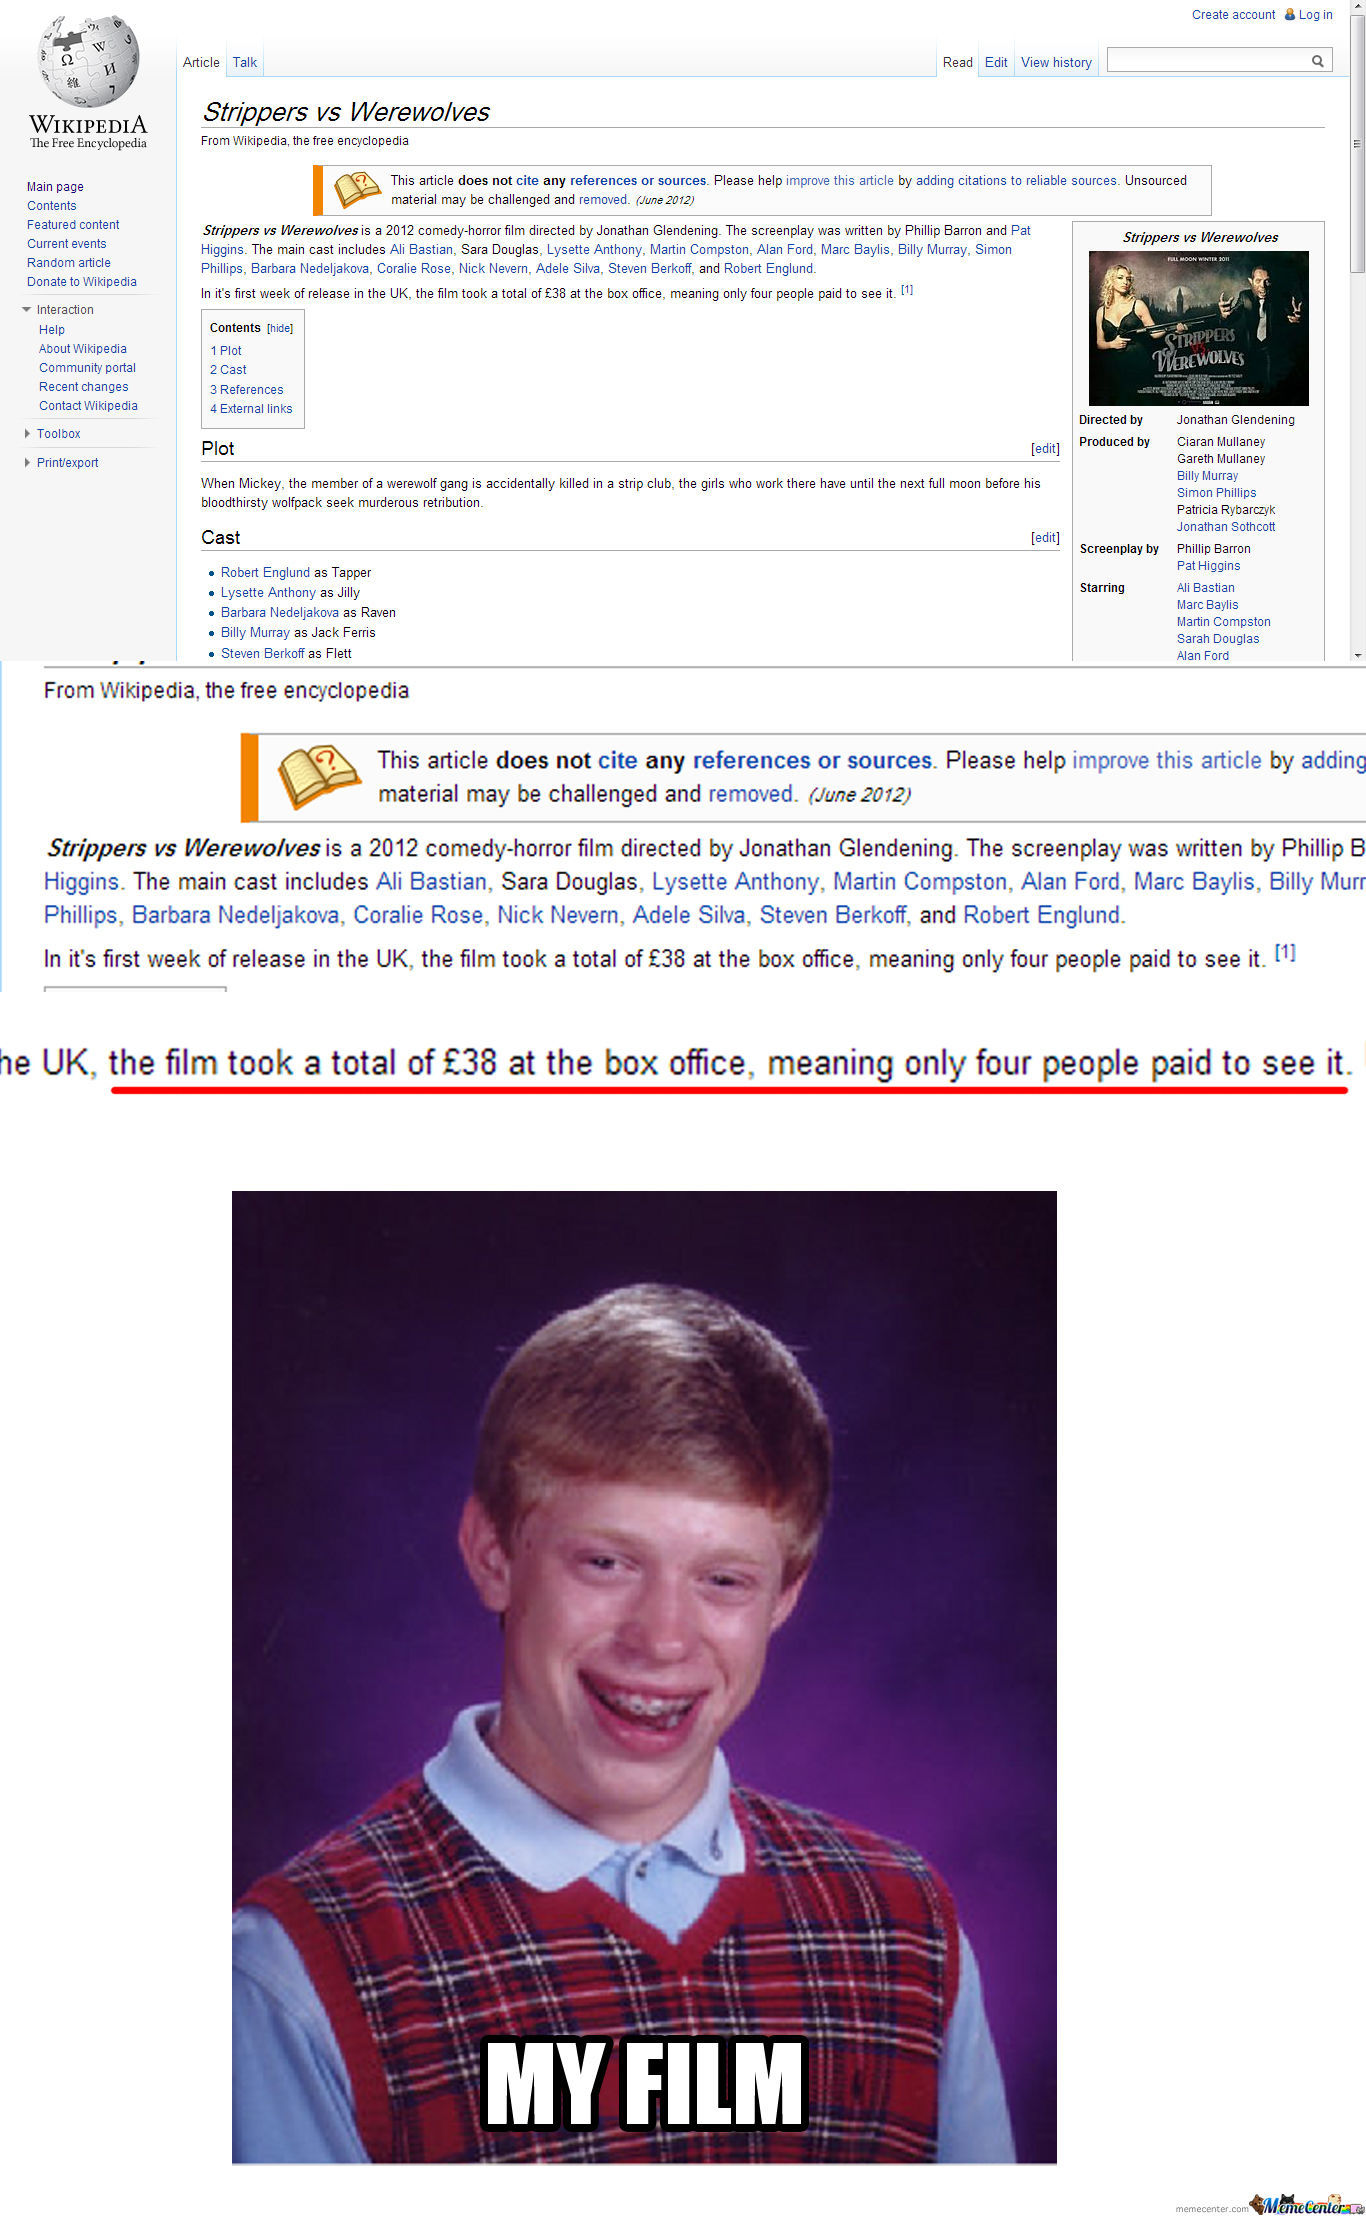 Bad Luck Brian's Film